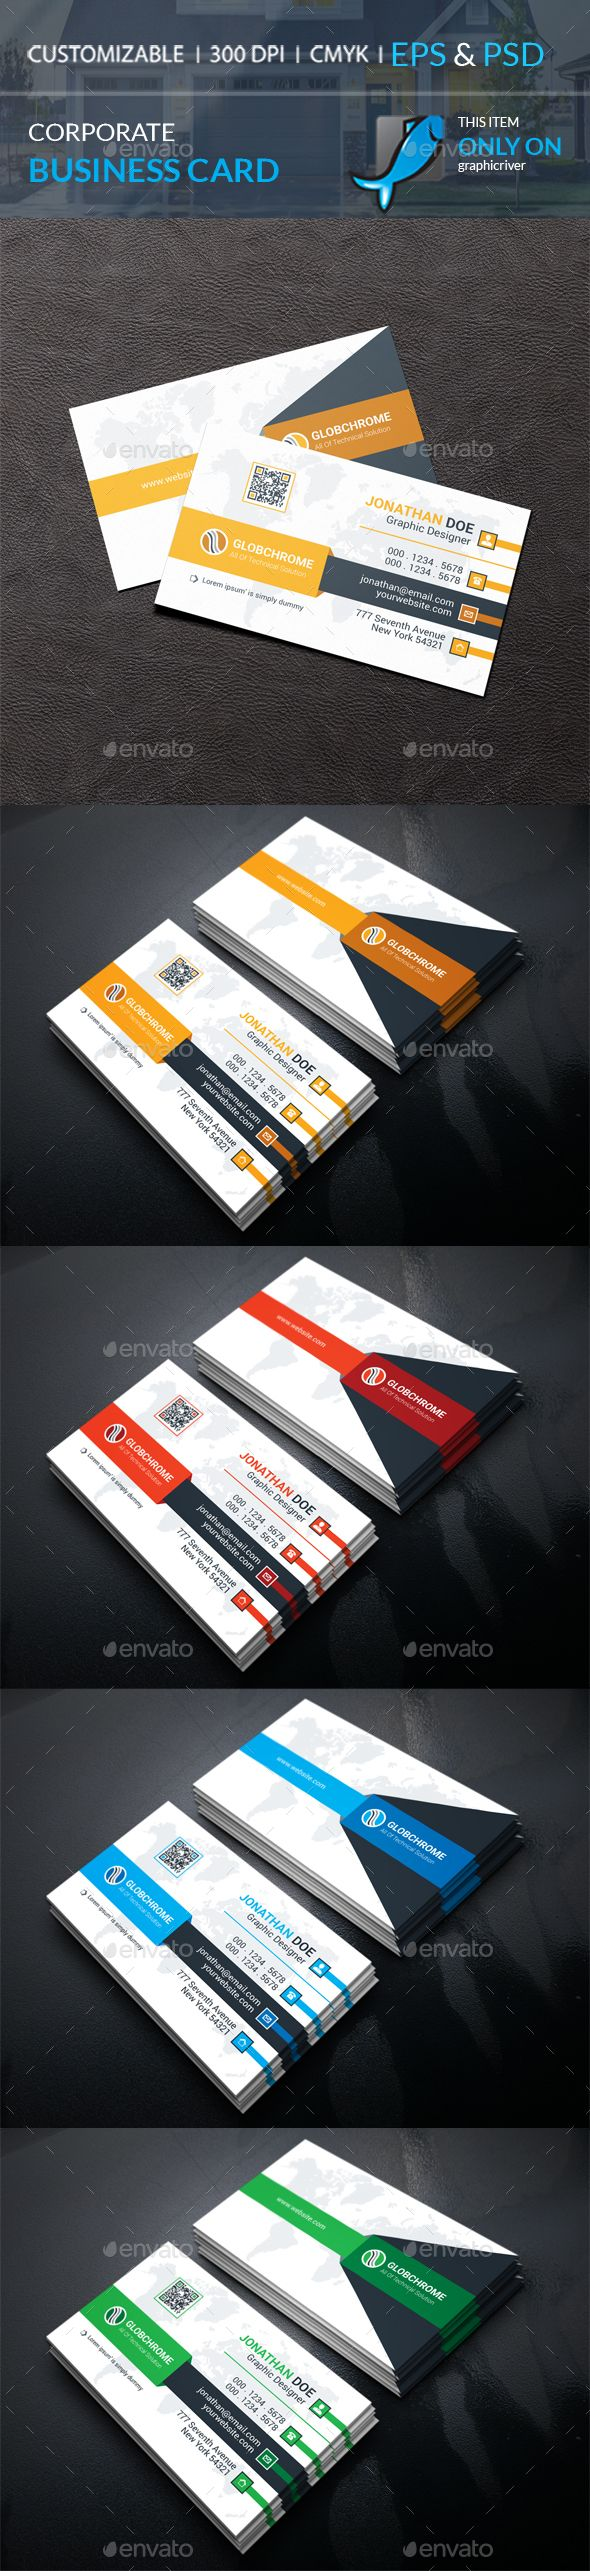 208 best business cards images on pinterest business card design corporate business card by galax e corporate business card well layered organised eps psd bleed cmyk print readytextfontscolors editable reheart Image collections